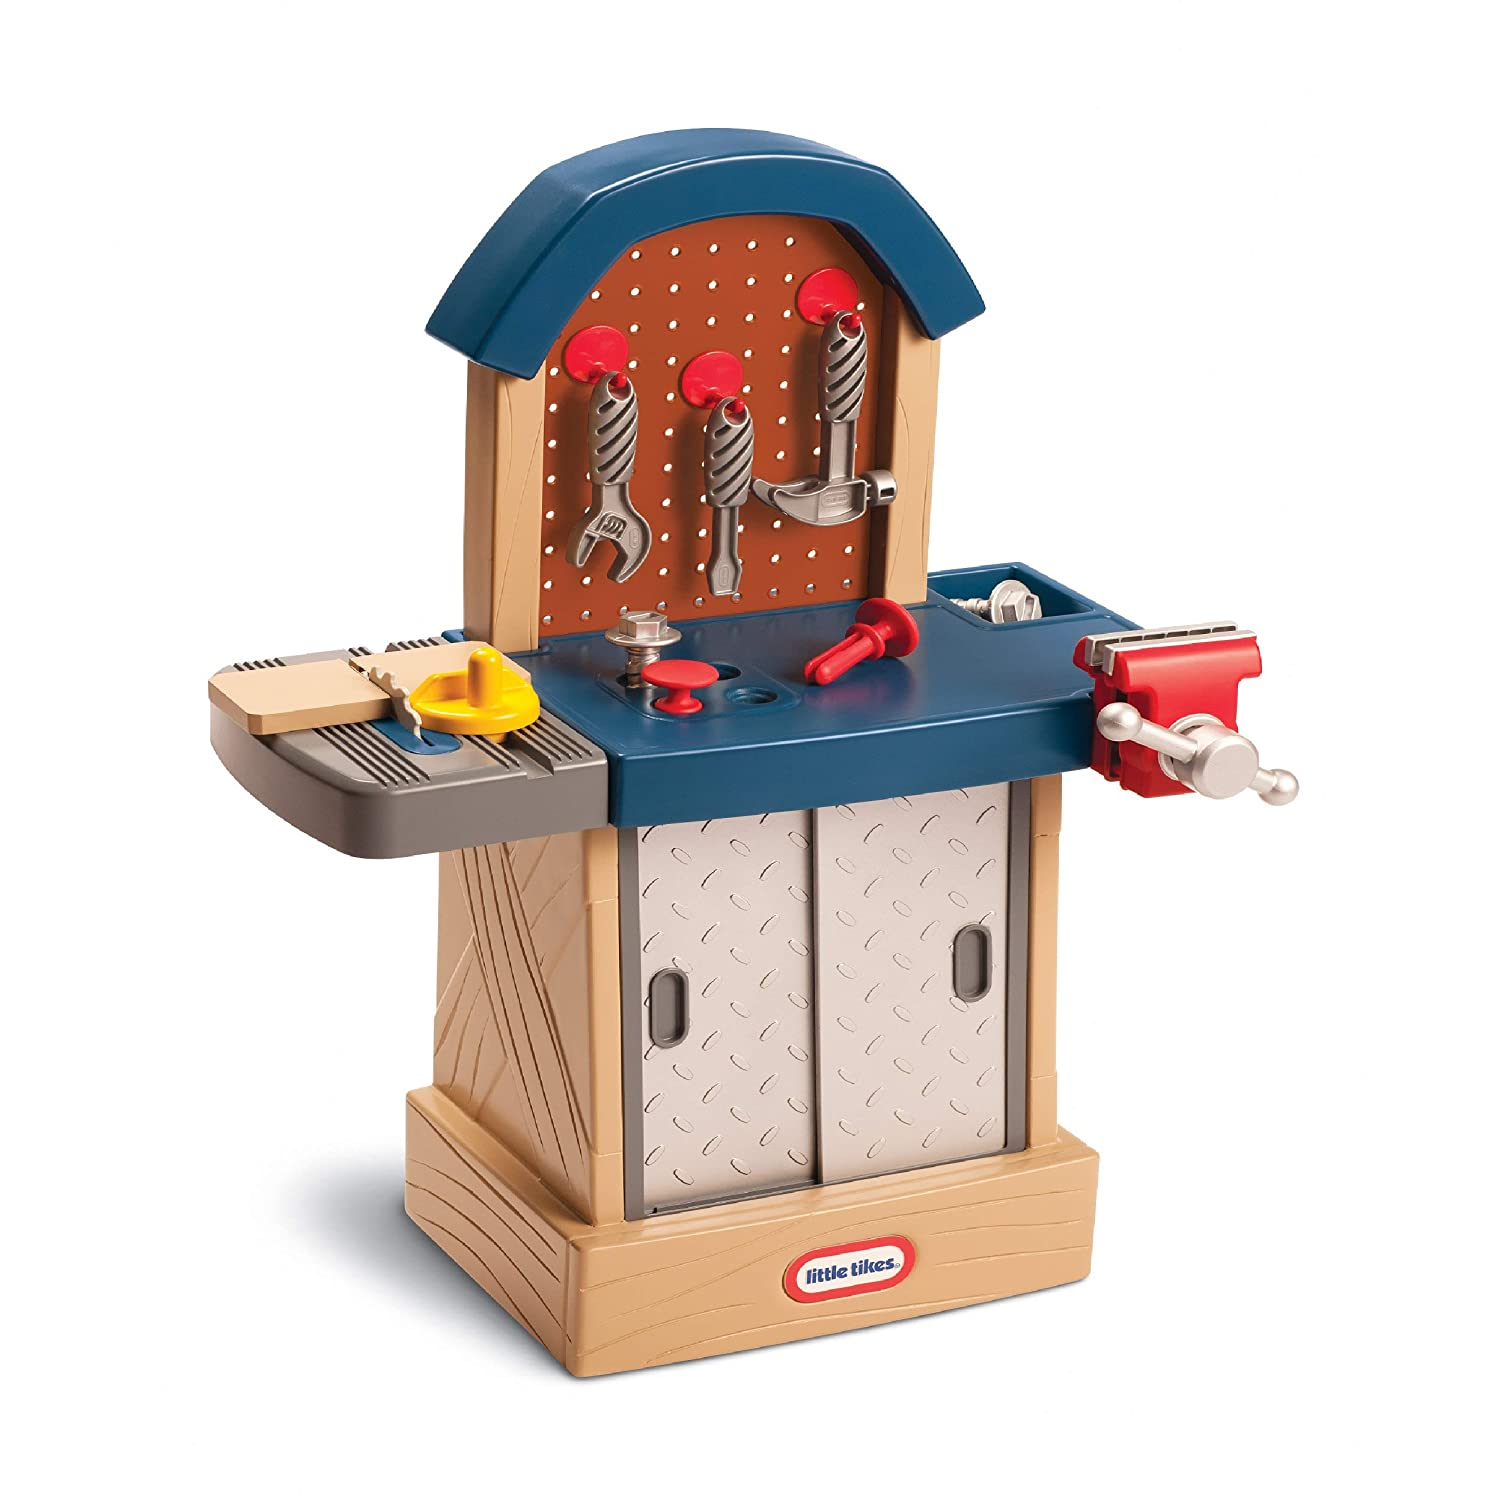 Top 9 Best Kids Toy Tool Bench Reviews in 2019 9